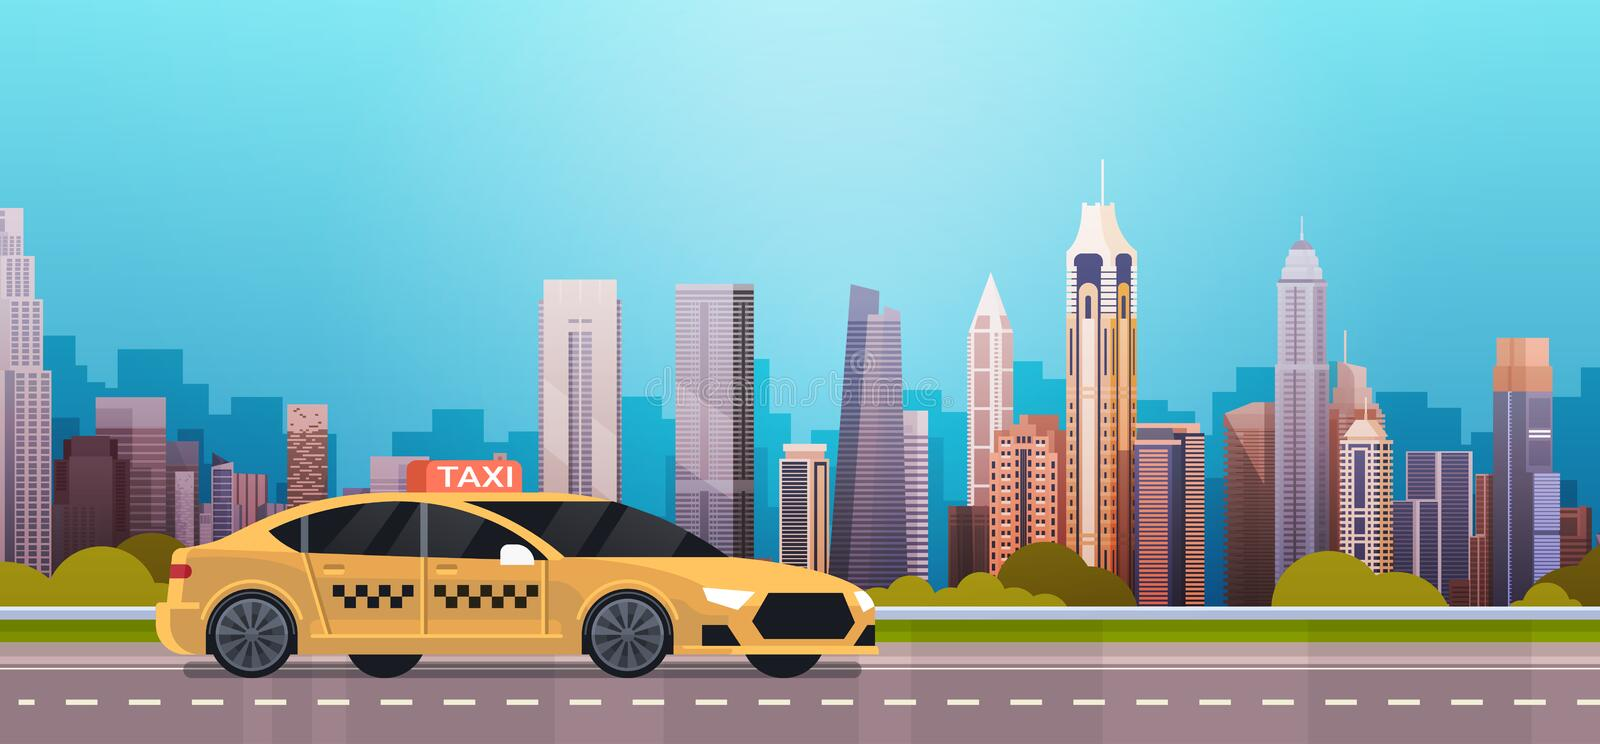 Yellow Taxi Car Cab On Road Over Modern City Background. Flat Vector Illustration stock illustration